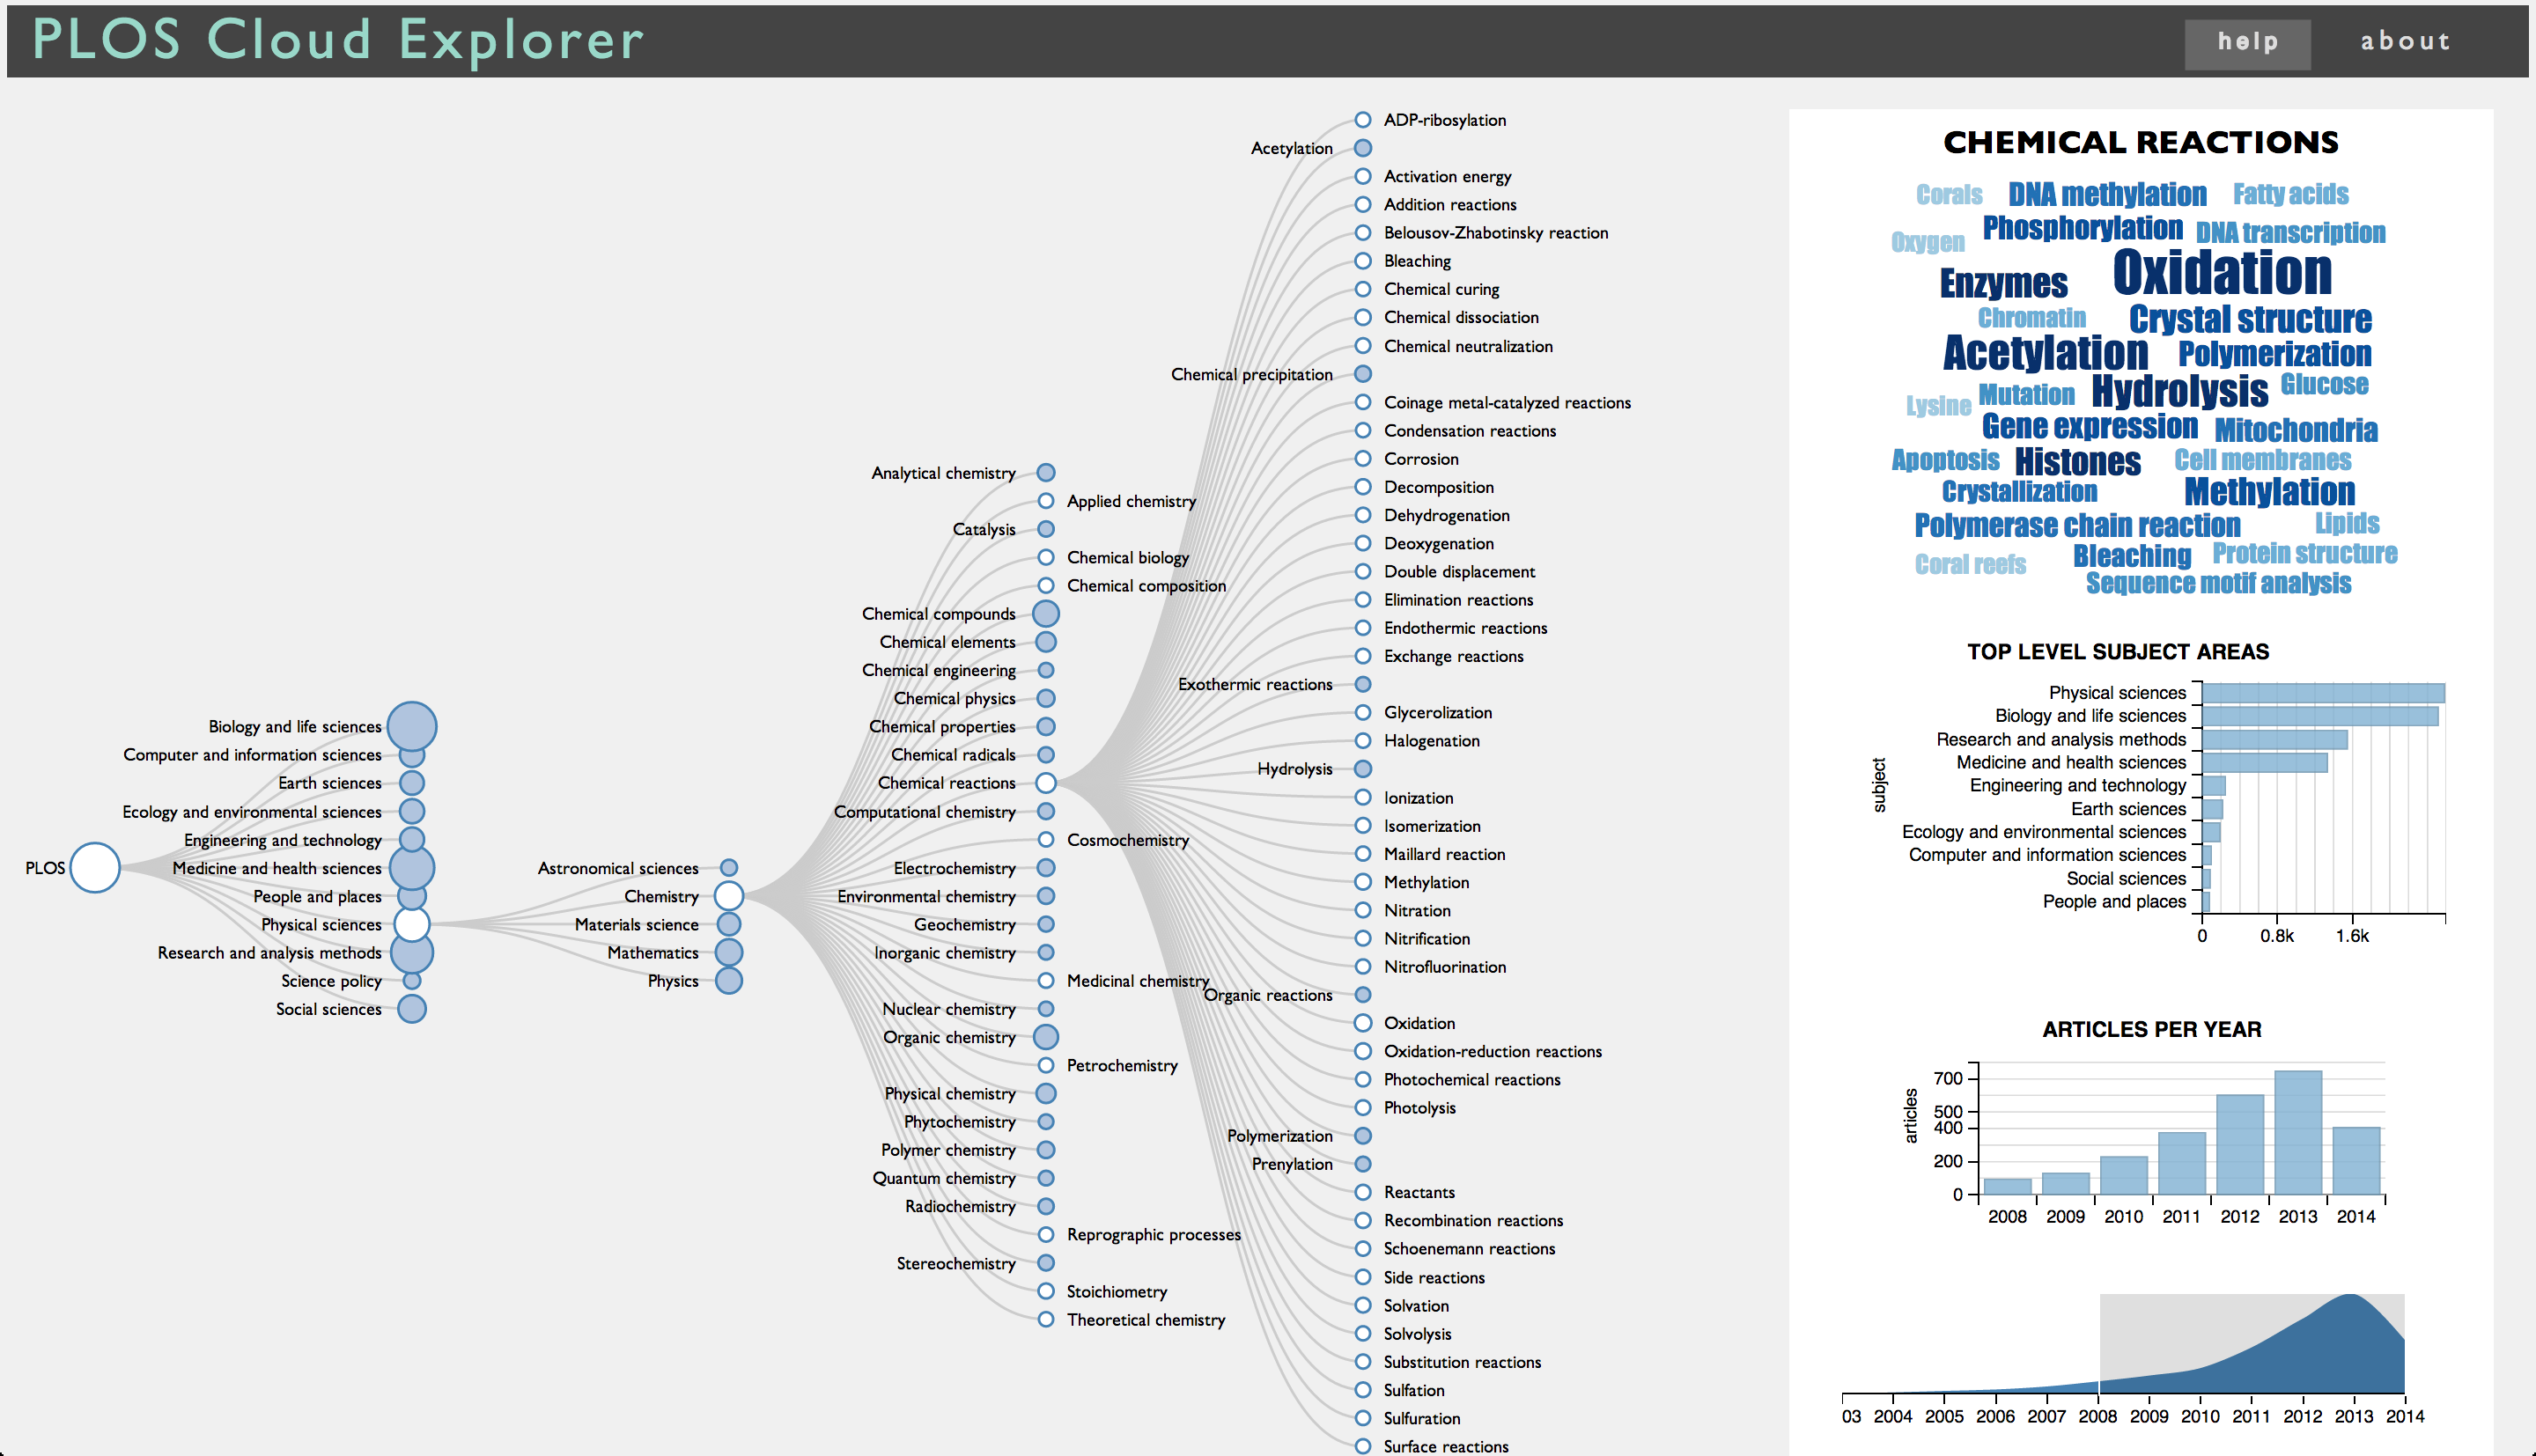 PLOS Cloud Explorer screenshot